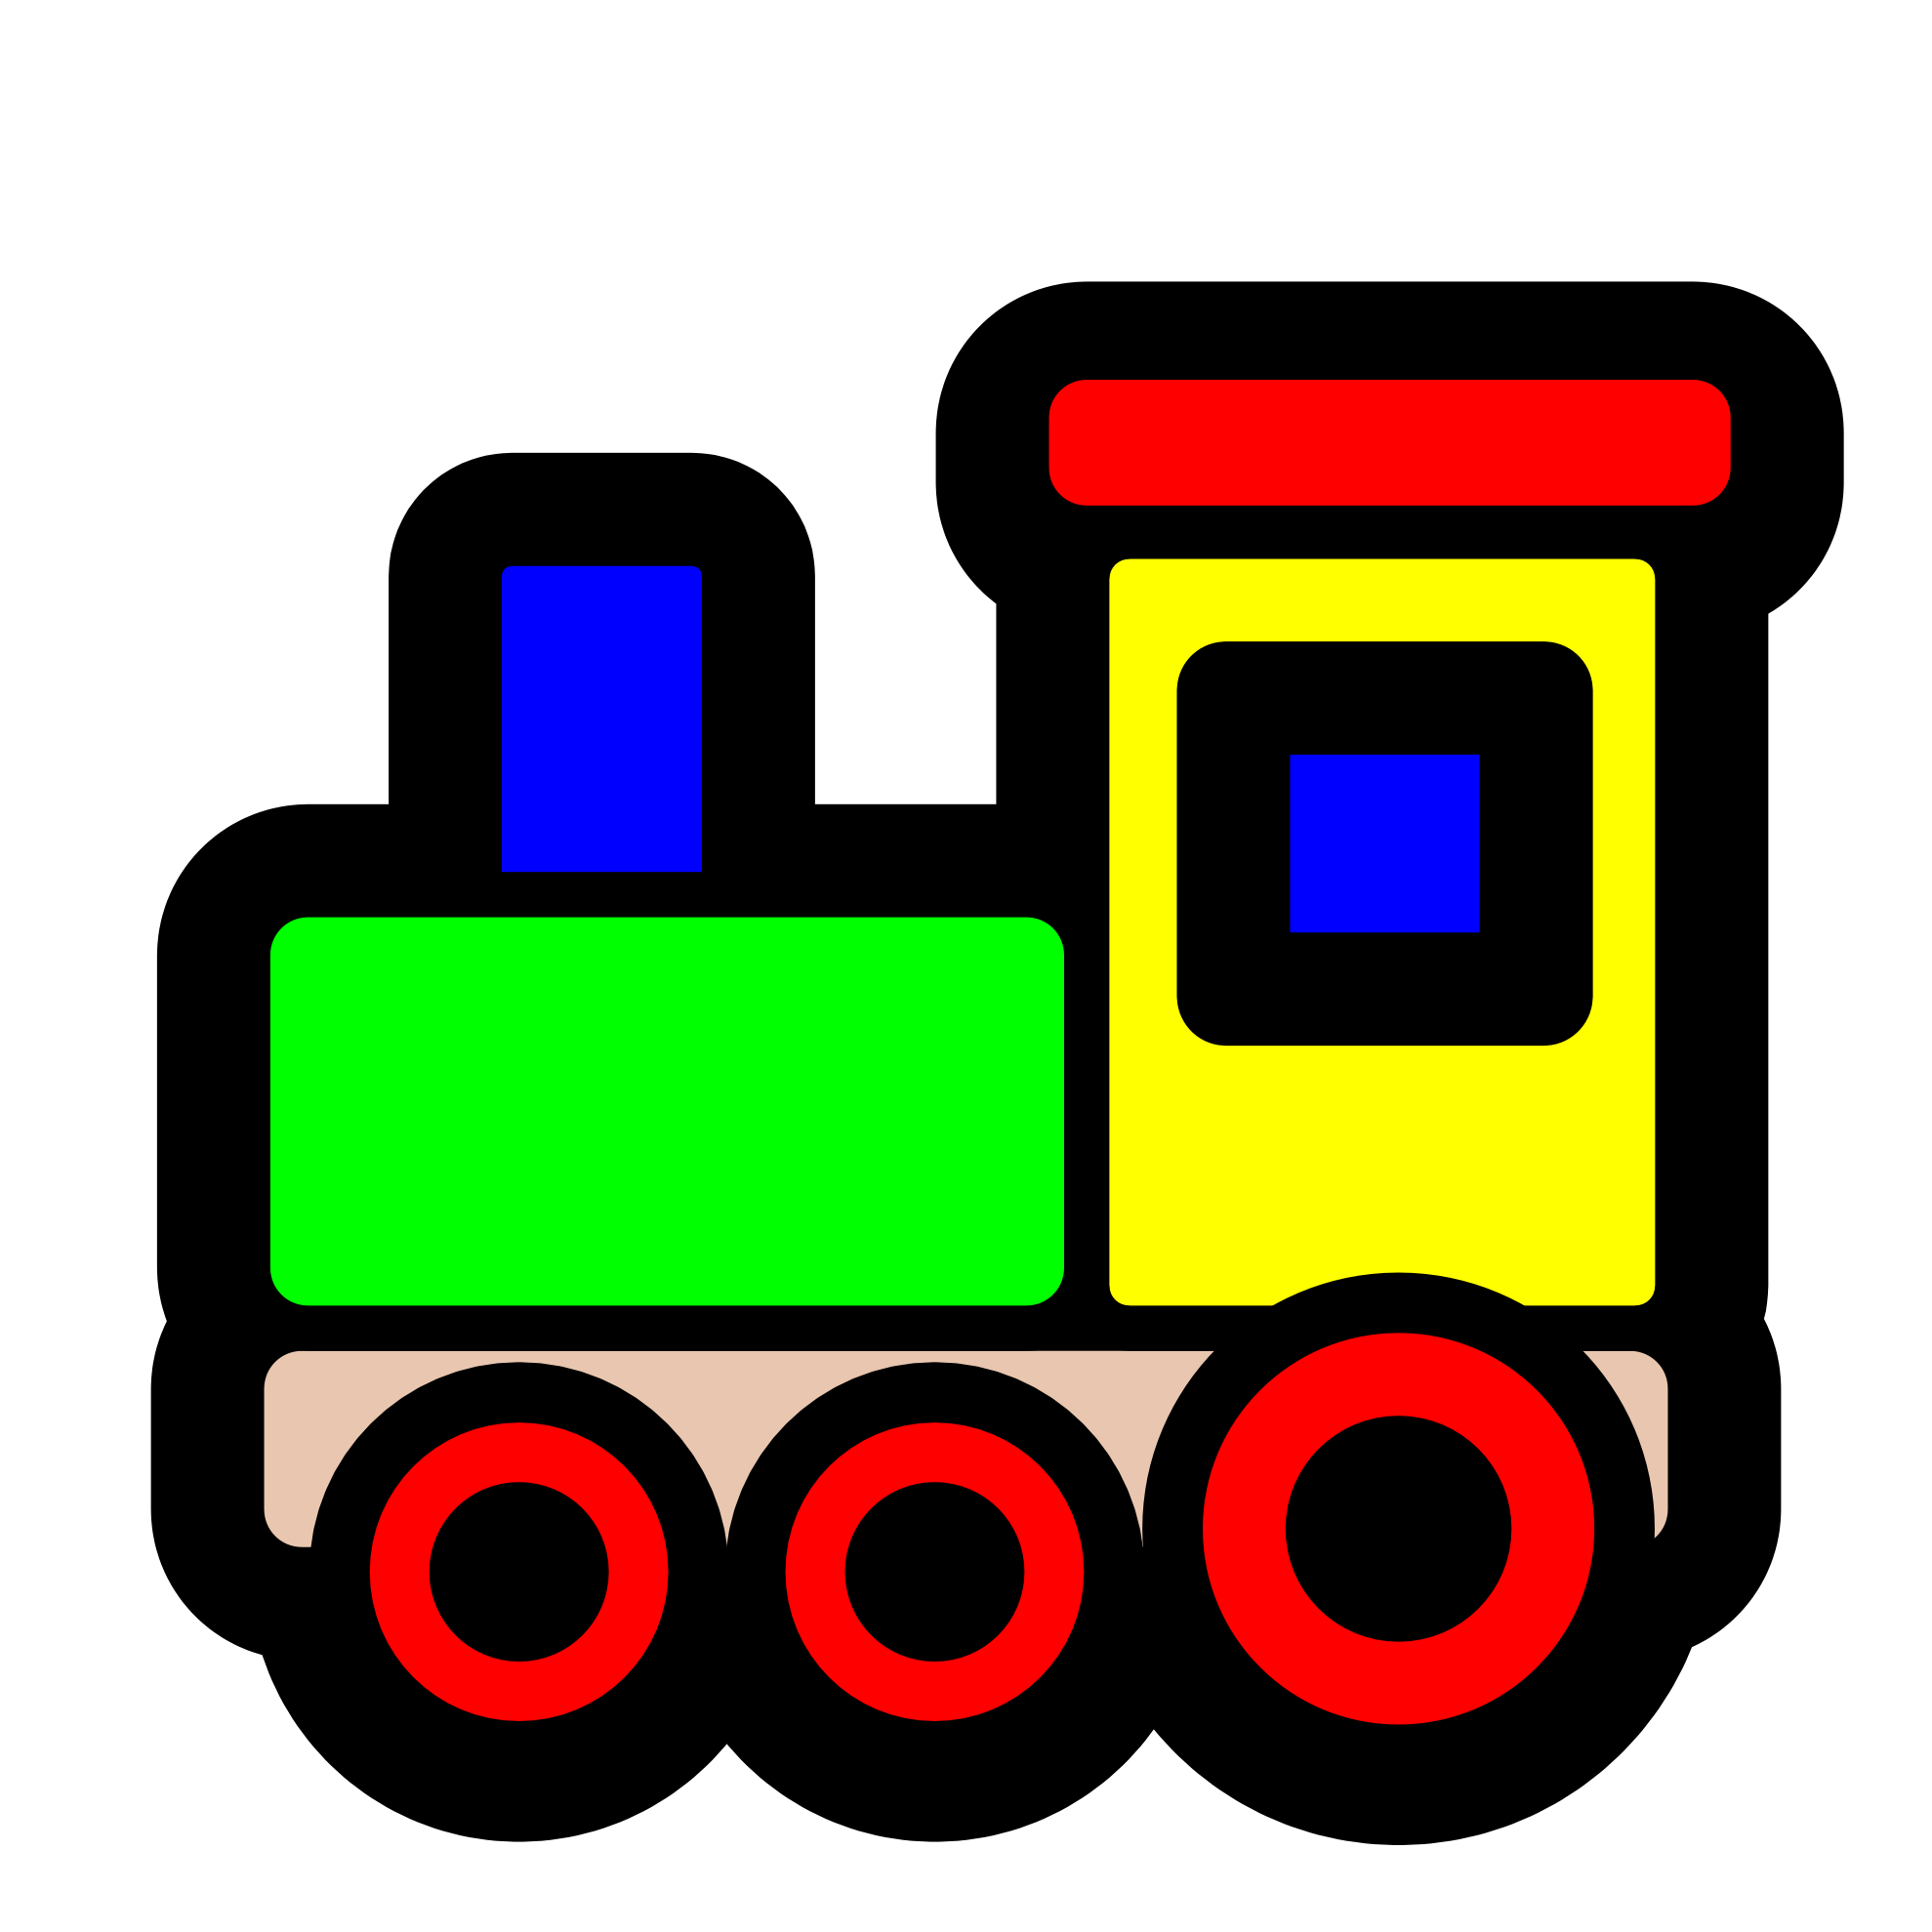 Transparent train toy. Banner black and